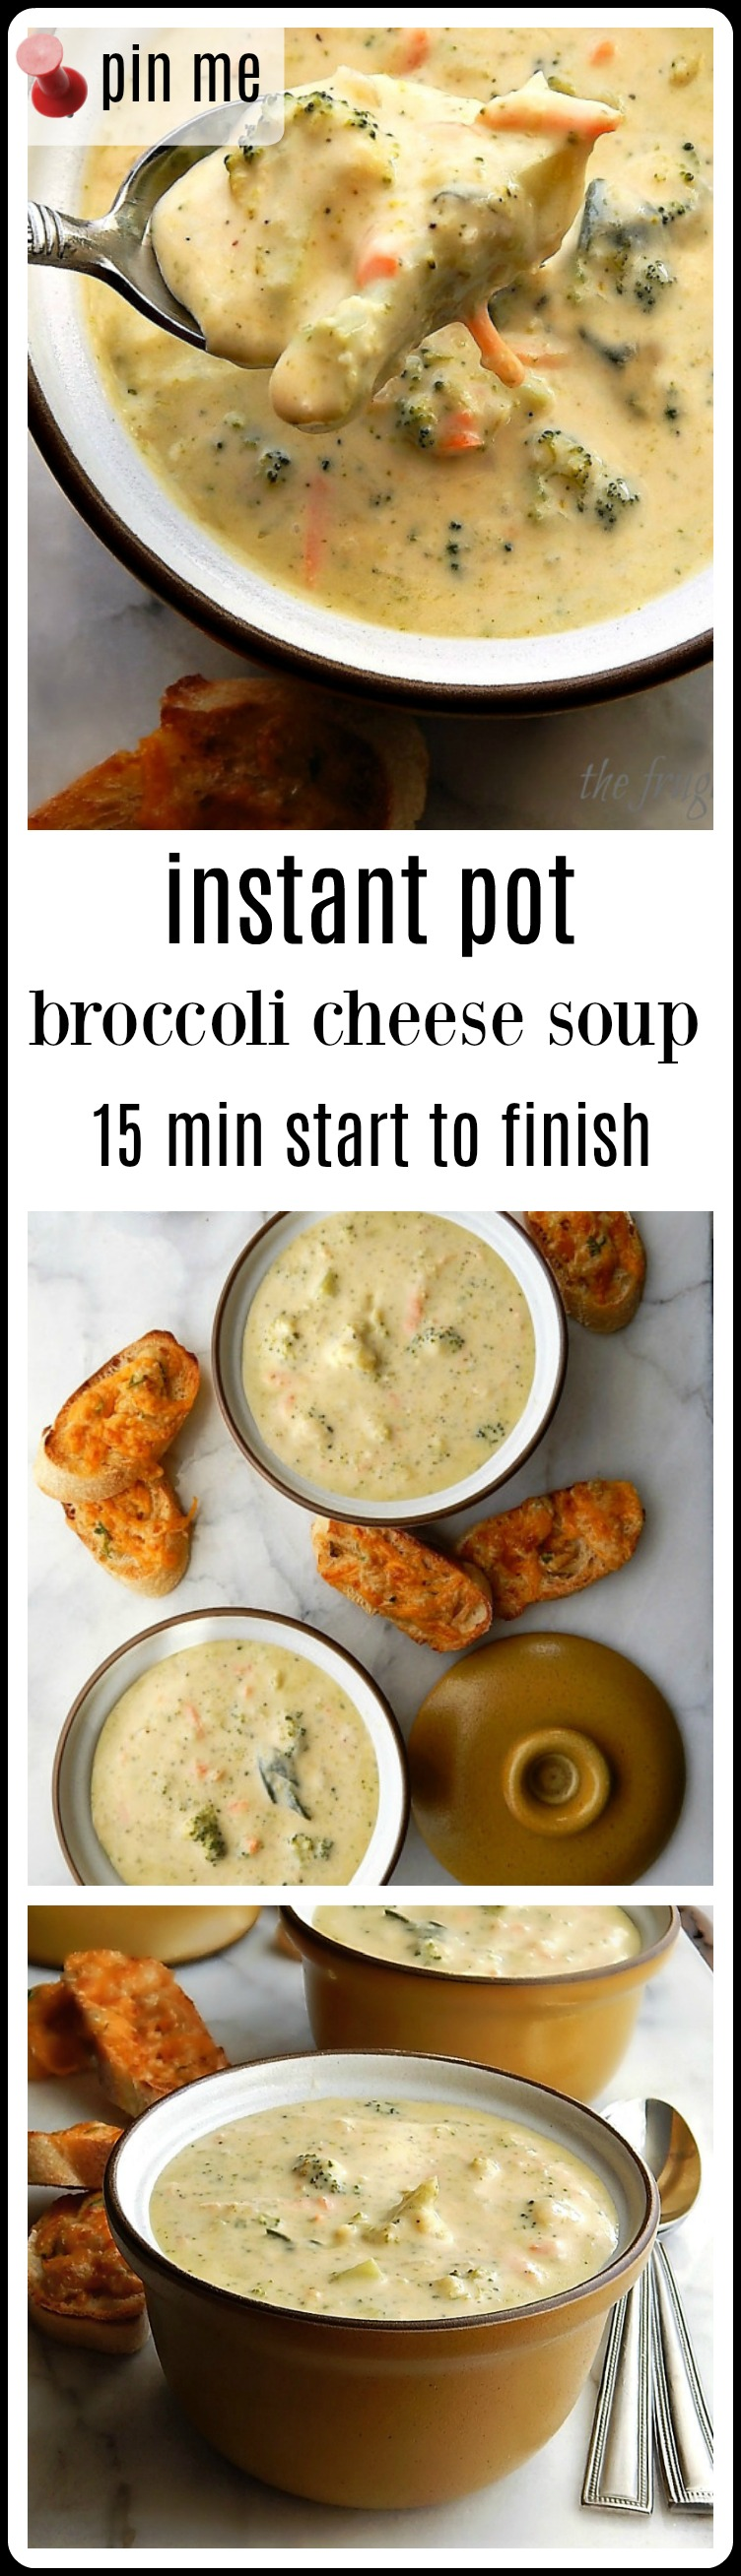 Broccoli Cheese Soup - So quick and easy and really outstanding. The best soup ever with tender bites of broccoli in a silky, creamy soup. 15 minutes start to finish. #InstantPotBroccoliCheddarSoup #InstantPotBroccoliCheeseSoup